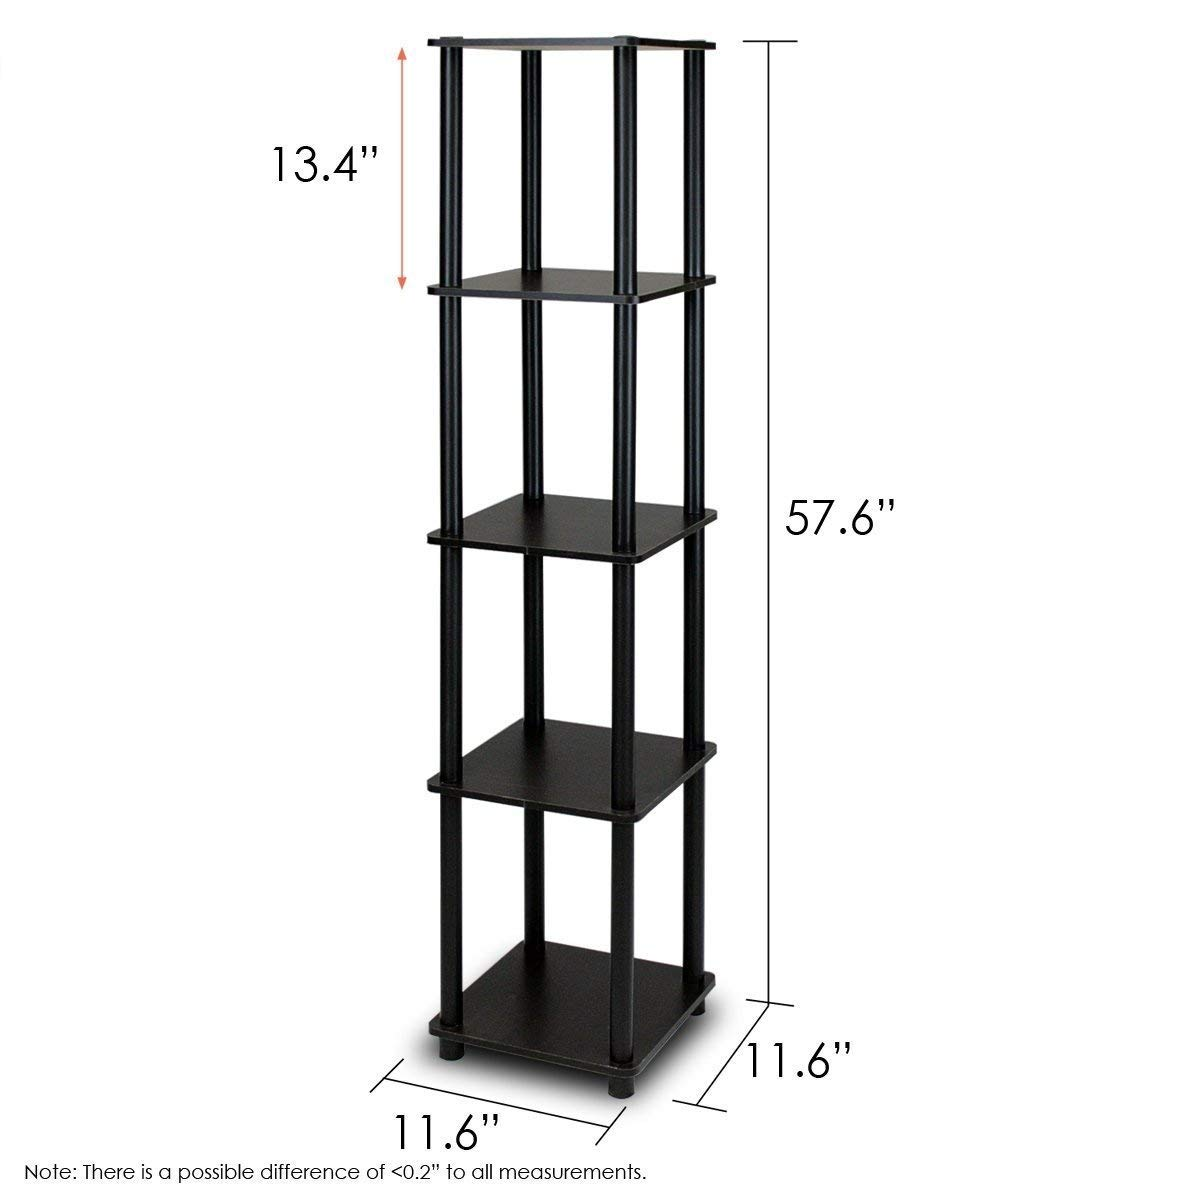 Trustpurchase 5-Tier Square Corner Display Shelf Bookcase in Espresso/Black, Designed to Meet The Demand of Low Cost but Durable & Efficient Furniture, Stylish Design Yet Functional Suitable for Room